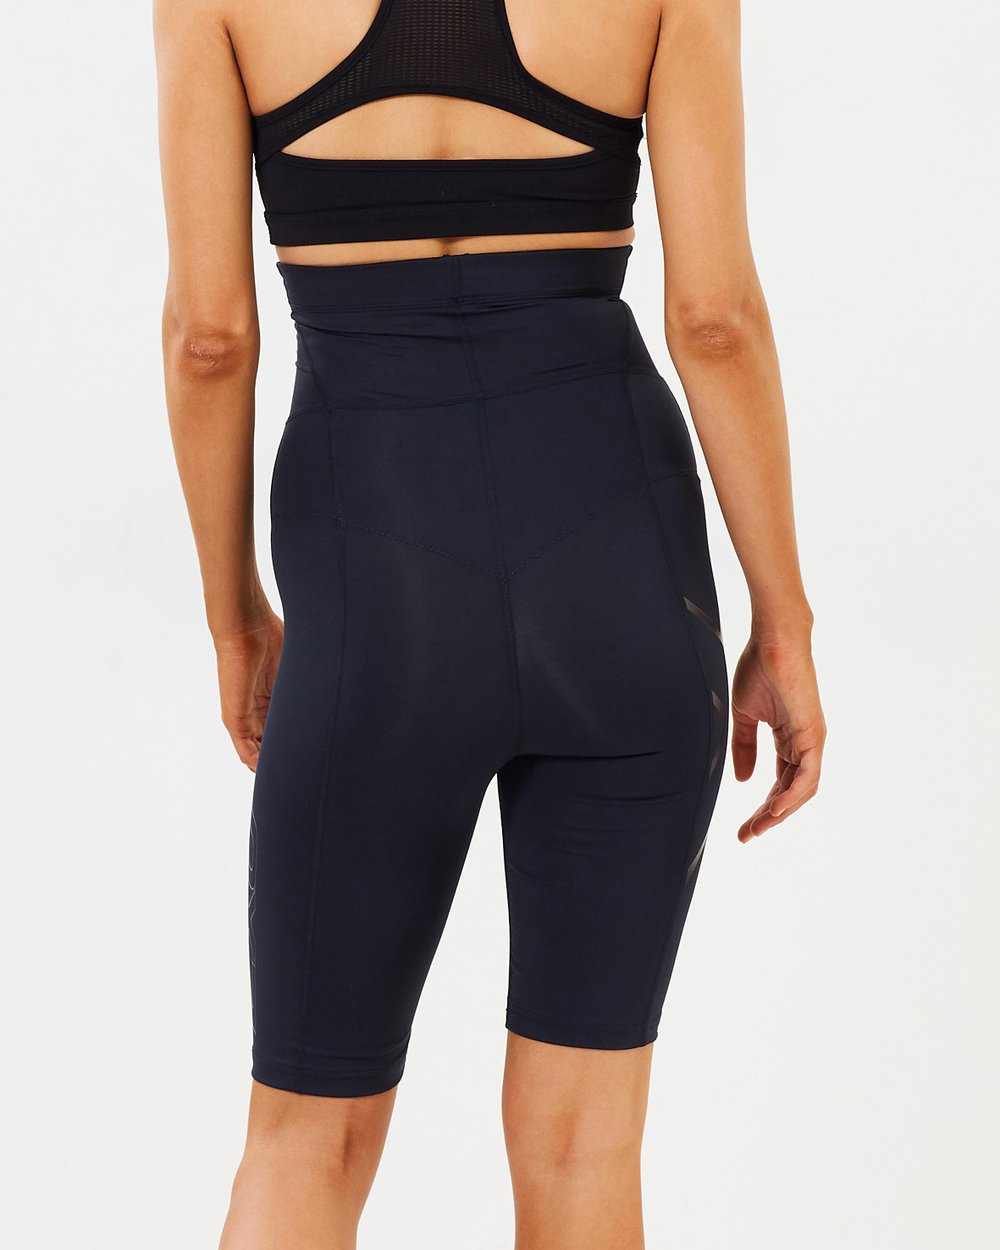 a345e913a38c8 Postnatal Active Shorts by 2XU Online | THE ICONIC | Australia